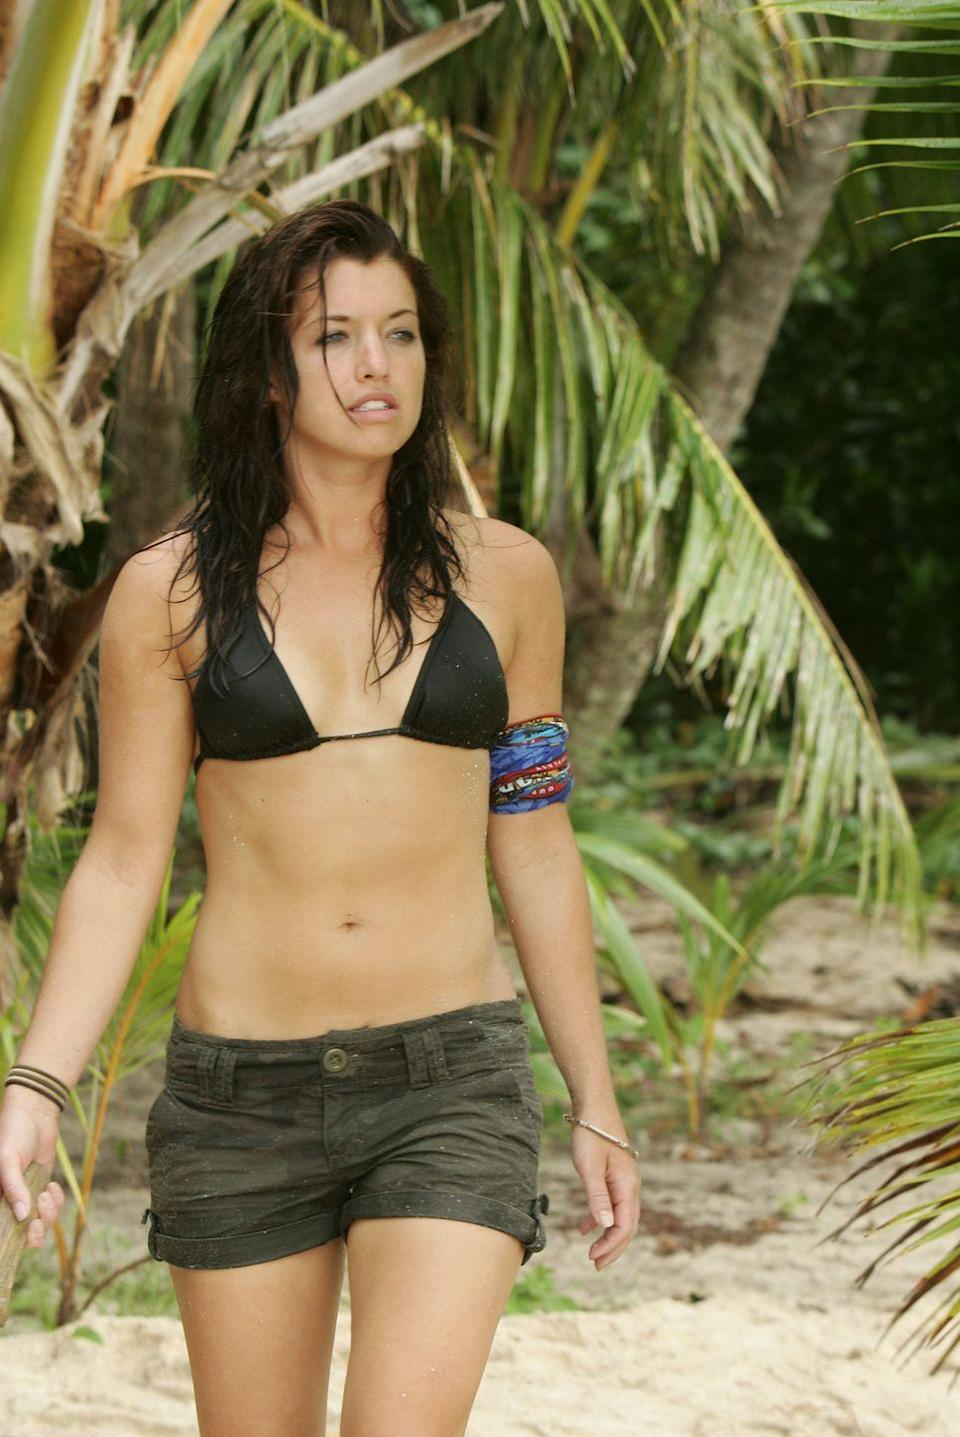 "<p><a href=""https://survivor.fandom.com/wiki/Parvati_Shallow"" rel=""nofollow noopener"" target=""_blank"" data-ylk=""slk:Parvarti Shallow"" class=""link rapid-noclick-resp"">Parvarti Shallow</a> was a competitor on <em>Survivor: Cook Islands</em>, <em>Survivor: Micronesia</em> (which she won), <em>Survivor: Heroes vs. Villains, </em>and <em>Survivor: Winners at War</em>. She's definitely a standout in <em>Survivo</em>r's 40-season history. Host Jeff Probst told <a href=""https://ew.com/tv/jeff-probst-survivor-winners-at-war-episode-6/"" rel=""nofollow noopener"" target=""_blank"" data-ylk=""slk:Entertainment Weekly"" class=""link rapid-noclick-resp""><em>Entertainment Weekly</em></a>, ""Parvati is considered by most every fan to be one of the single digit best to ever play.""</p>"